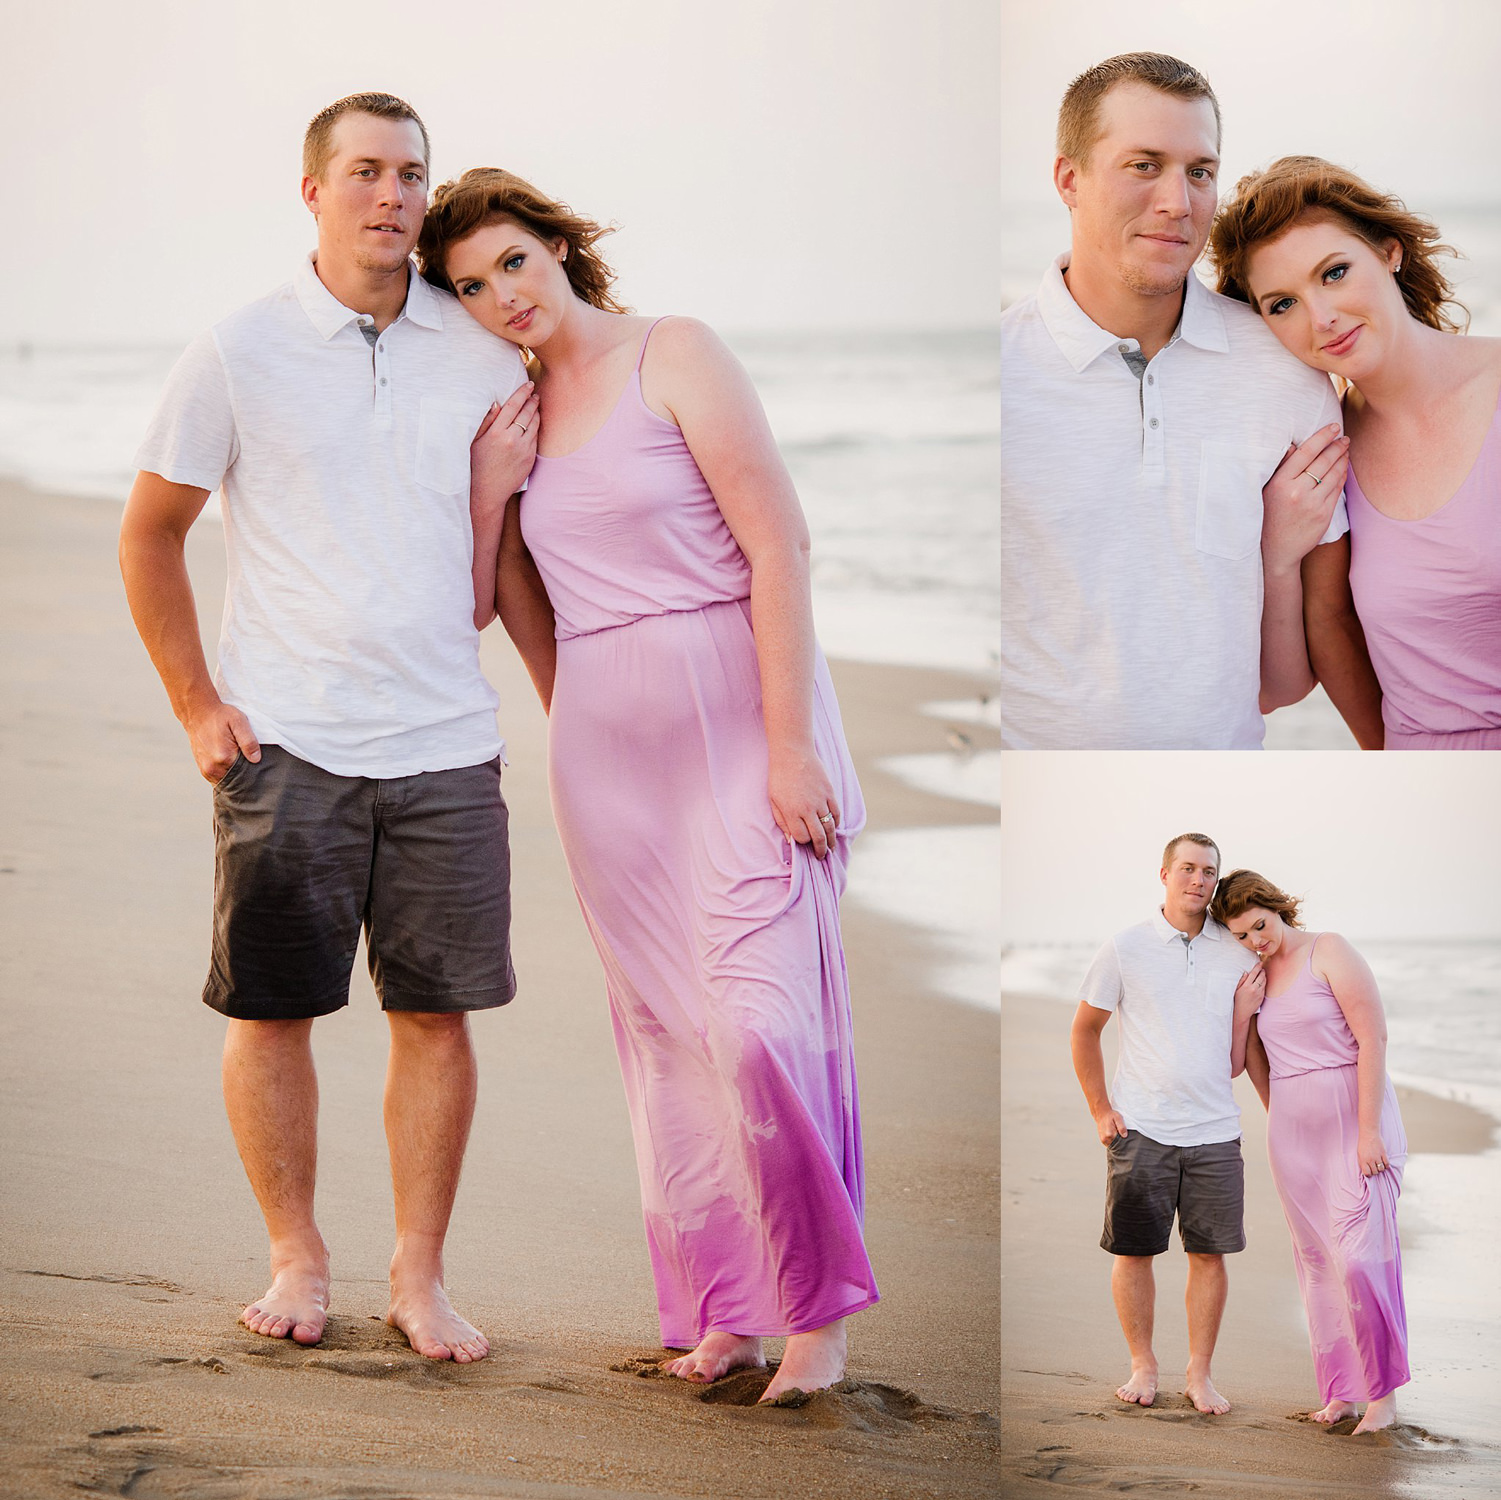 beach-portraits-couple-va-beach-melissa-bliss-photography.jpg